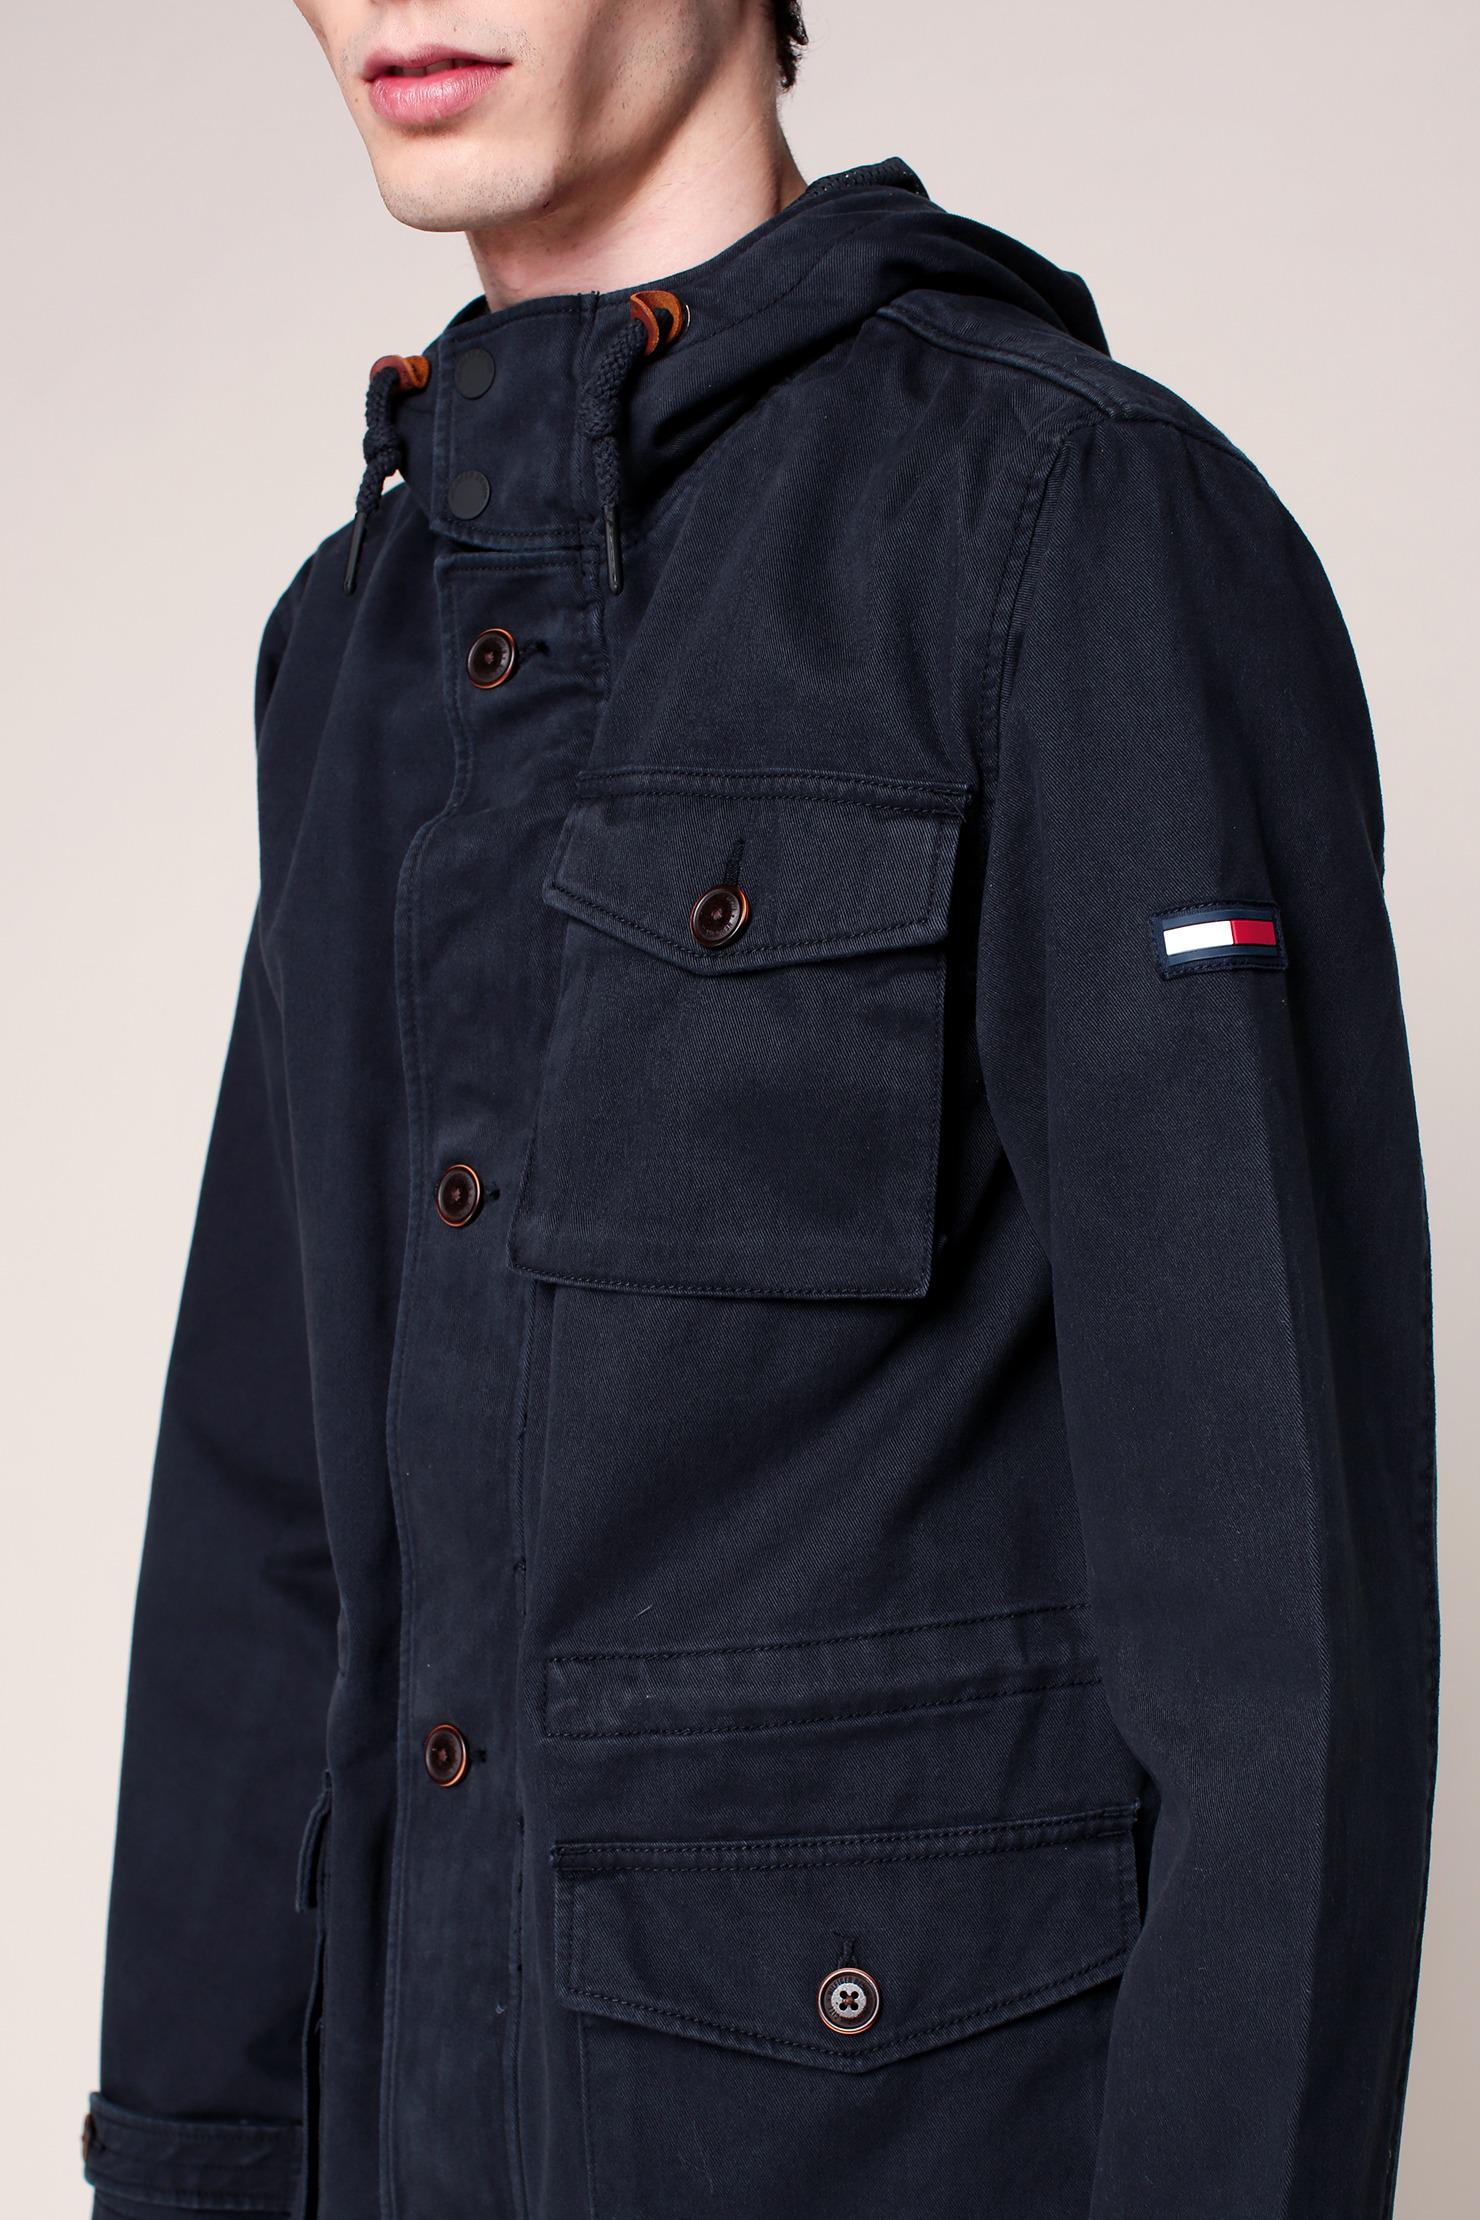 lyst hilfiger denim parka in blue for men. Black Bedroom Furniture Sets. Home Design Ideas